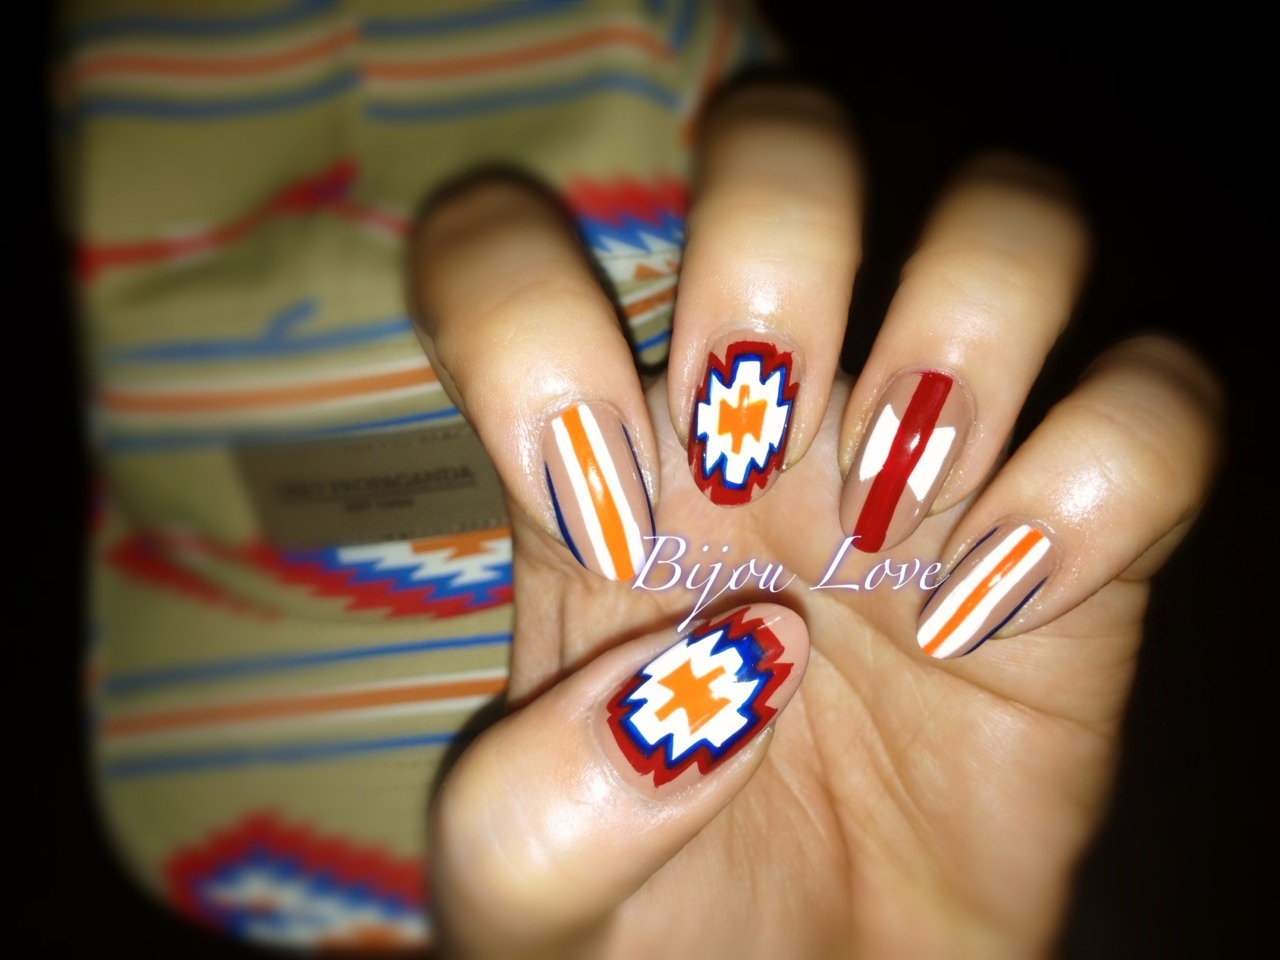 bijoulovebyglow:  31 day nail challenge day 26: inspired by a PATTERN, used the pattern from my fiancé's hat  Wow